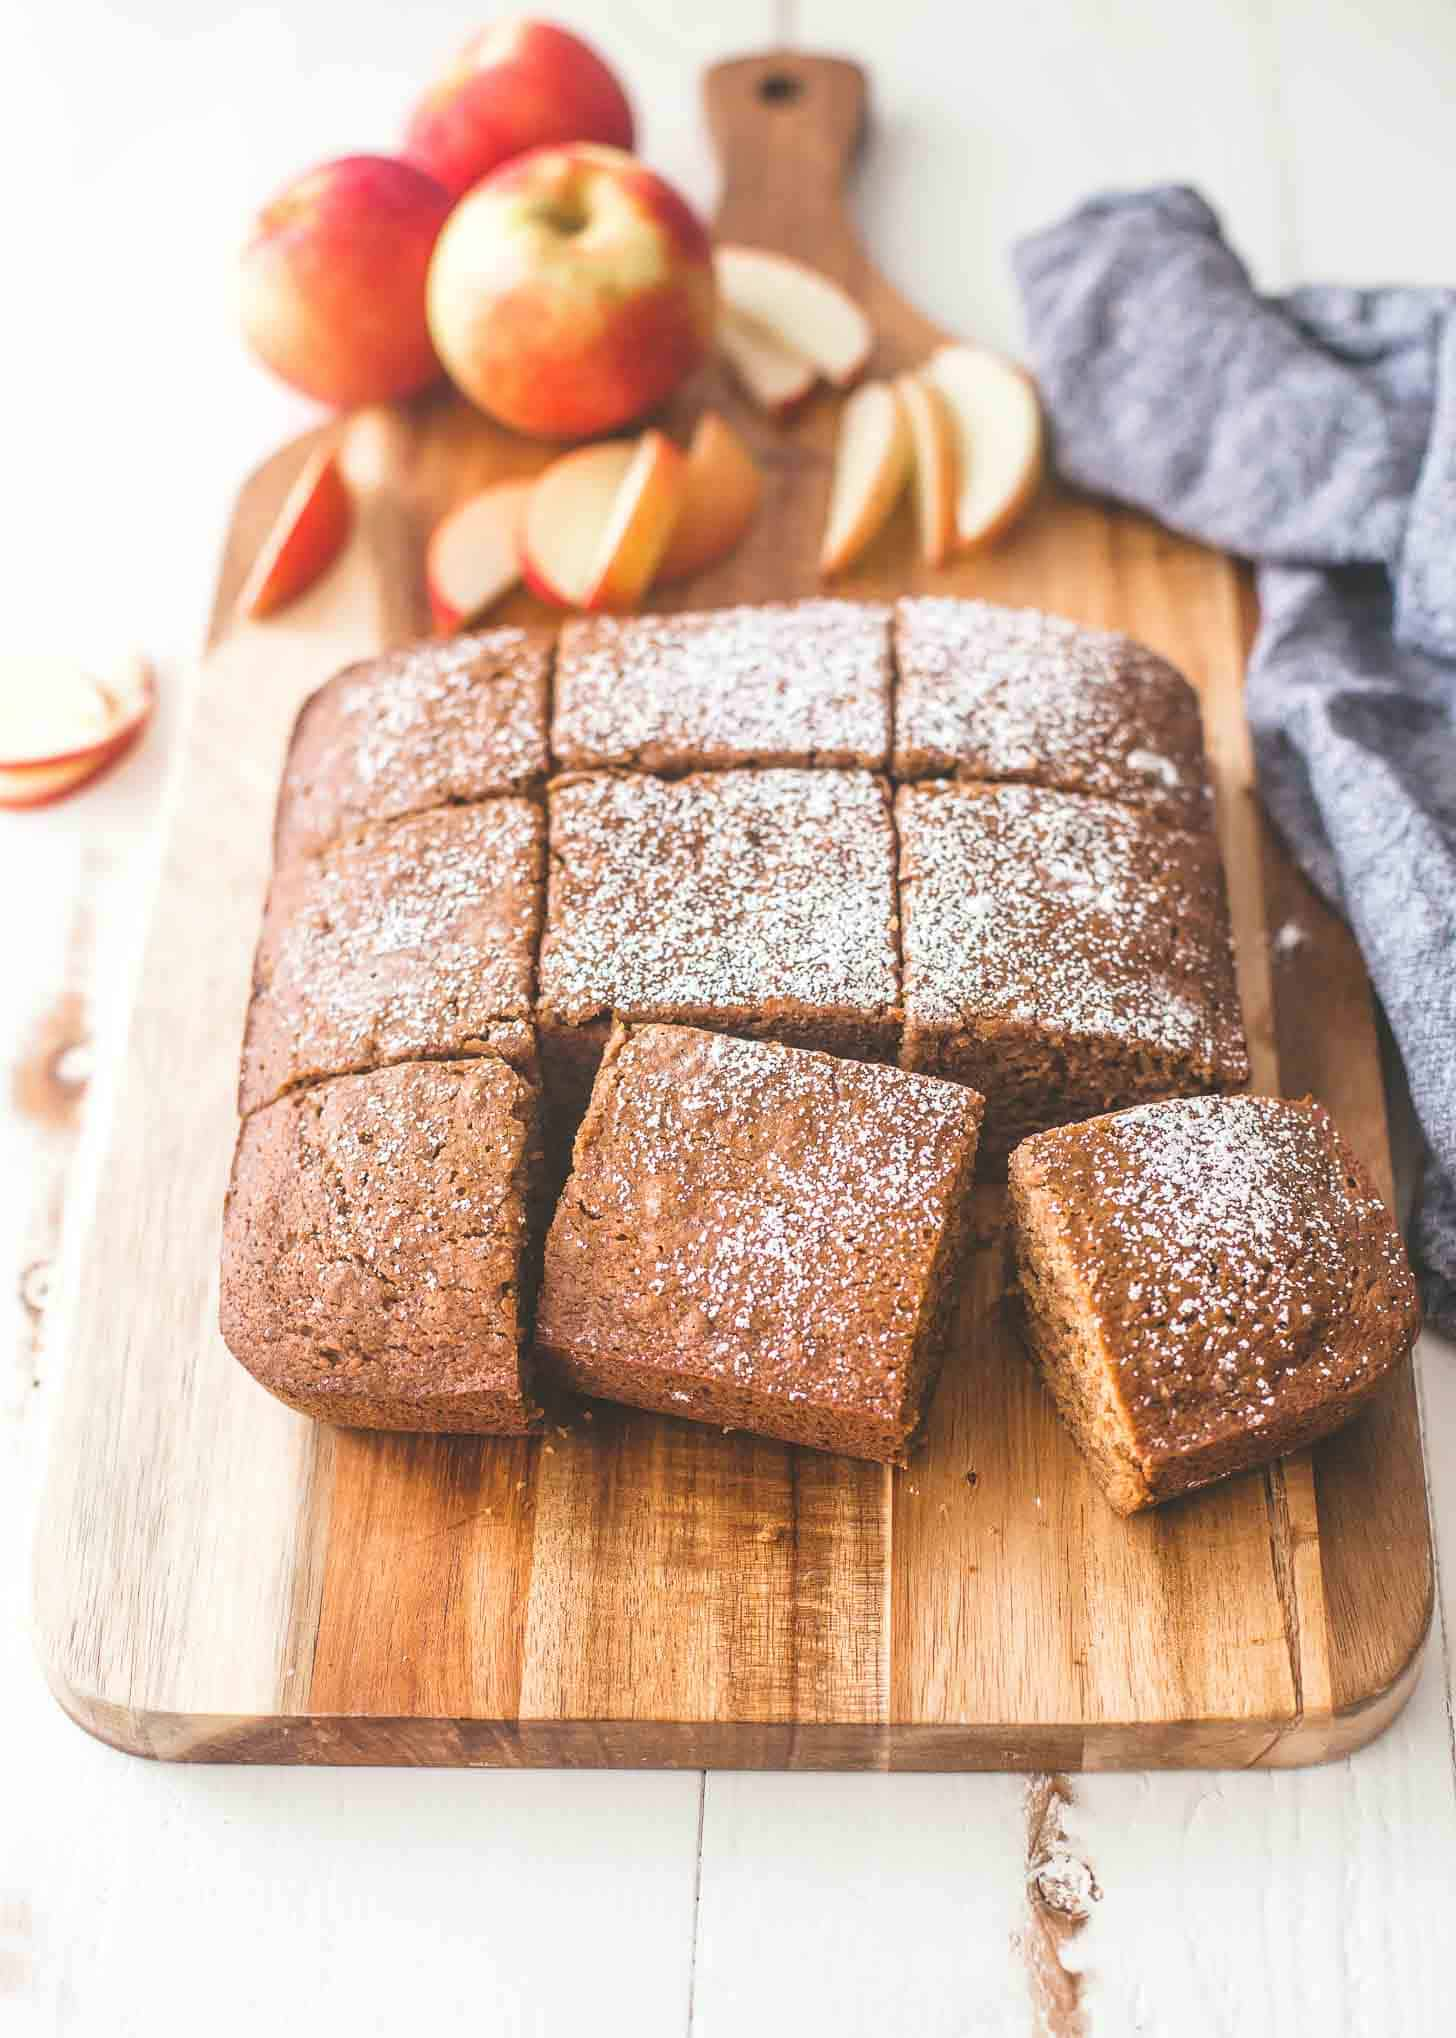 Applesauce Cake cut into squares